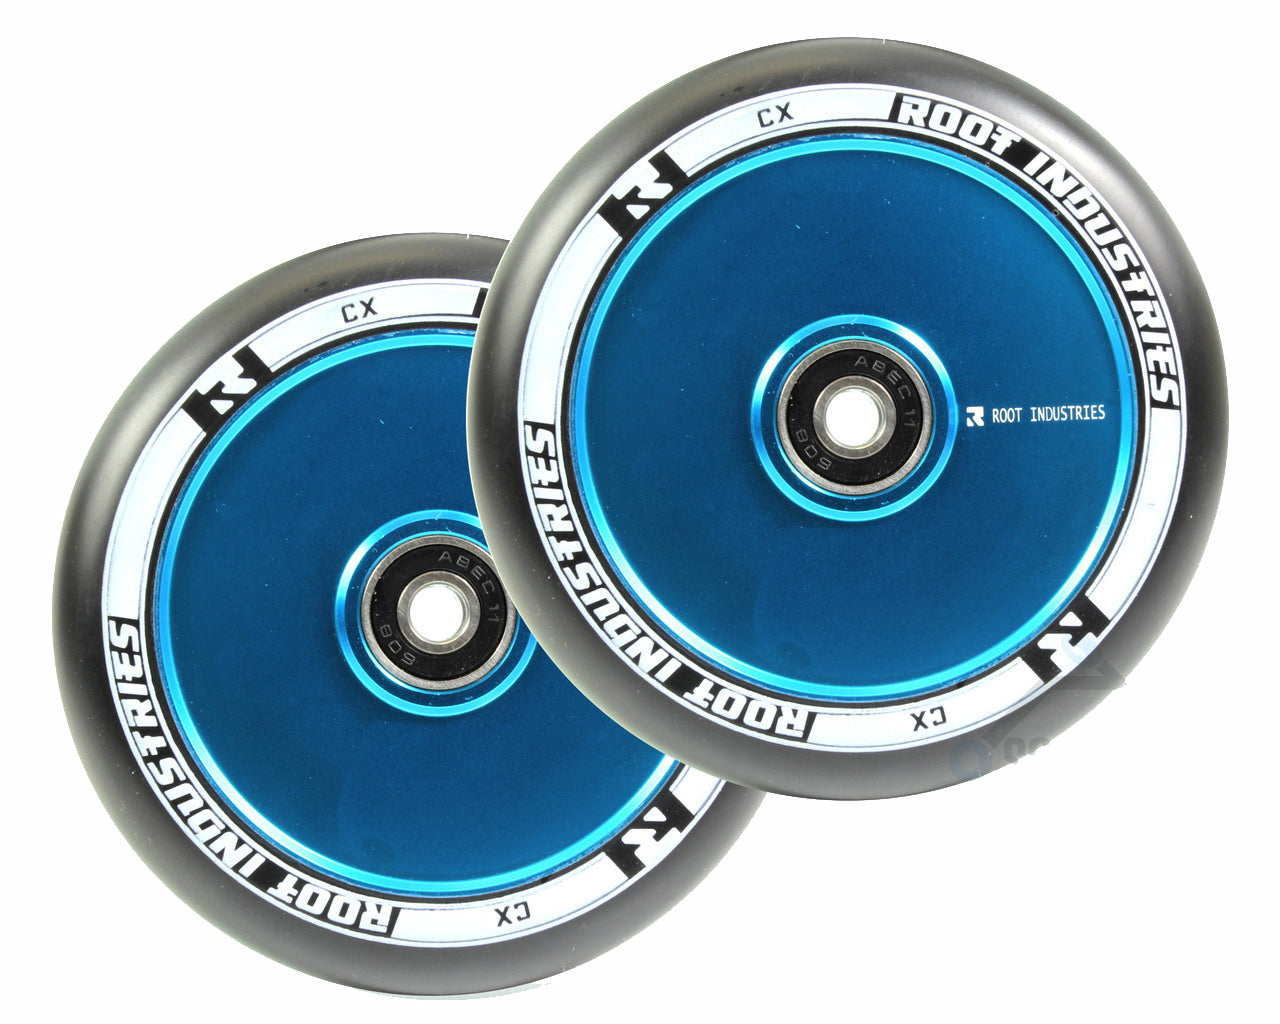 ROOT INDUSTRIES AIR WHEELS 110mm - BLACK/SKY BLUE